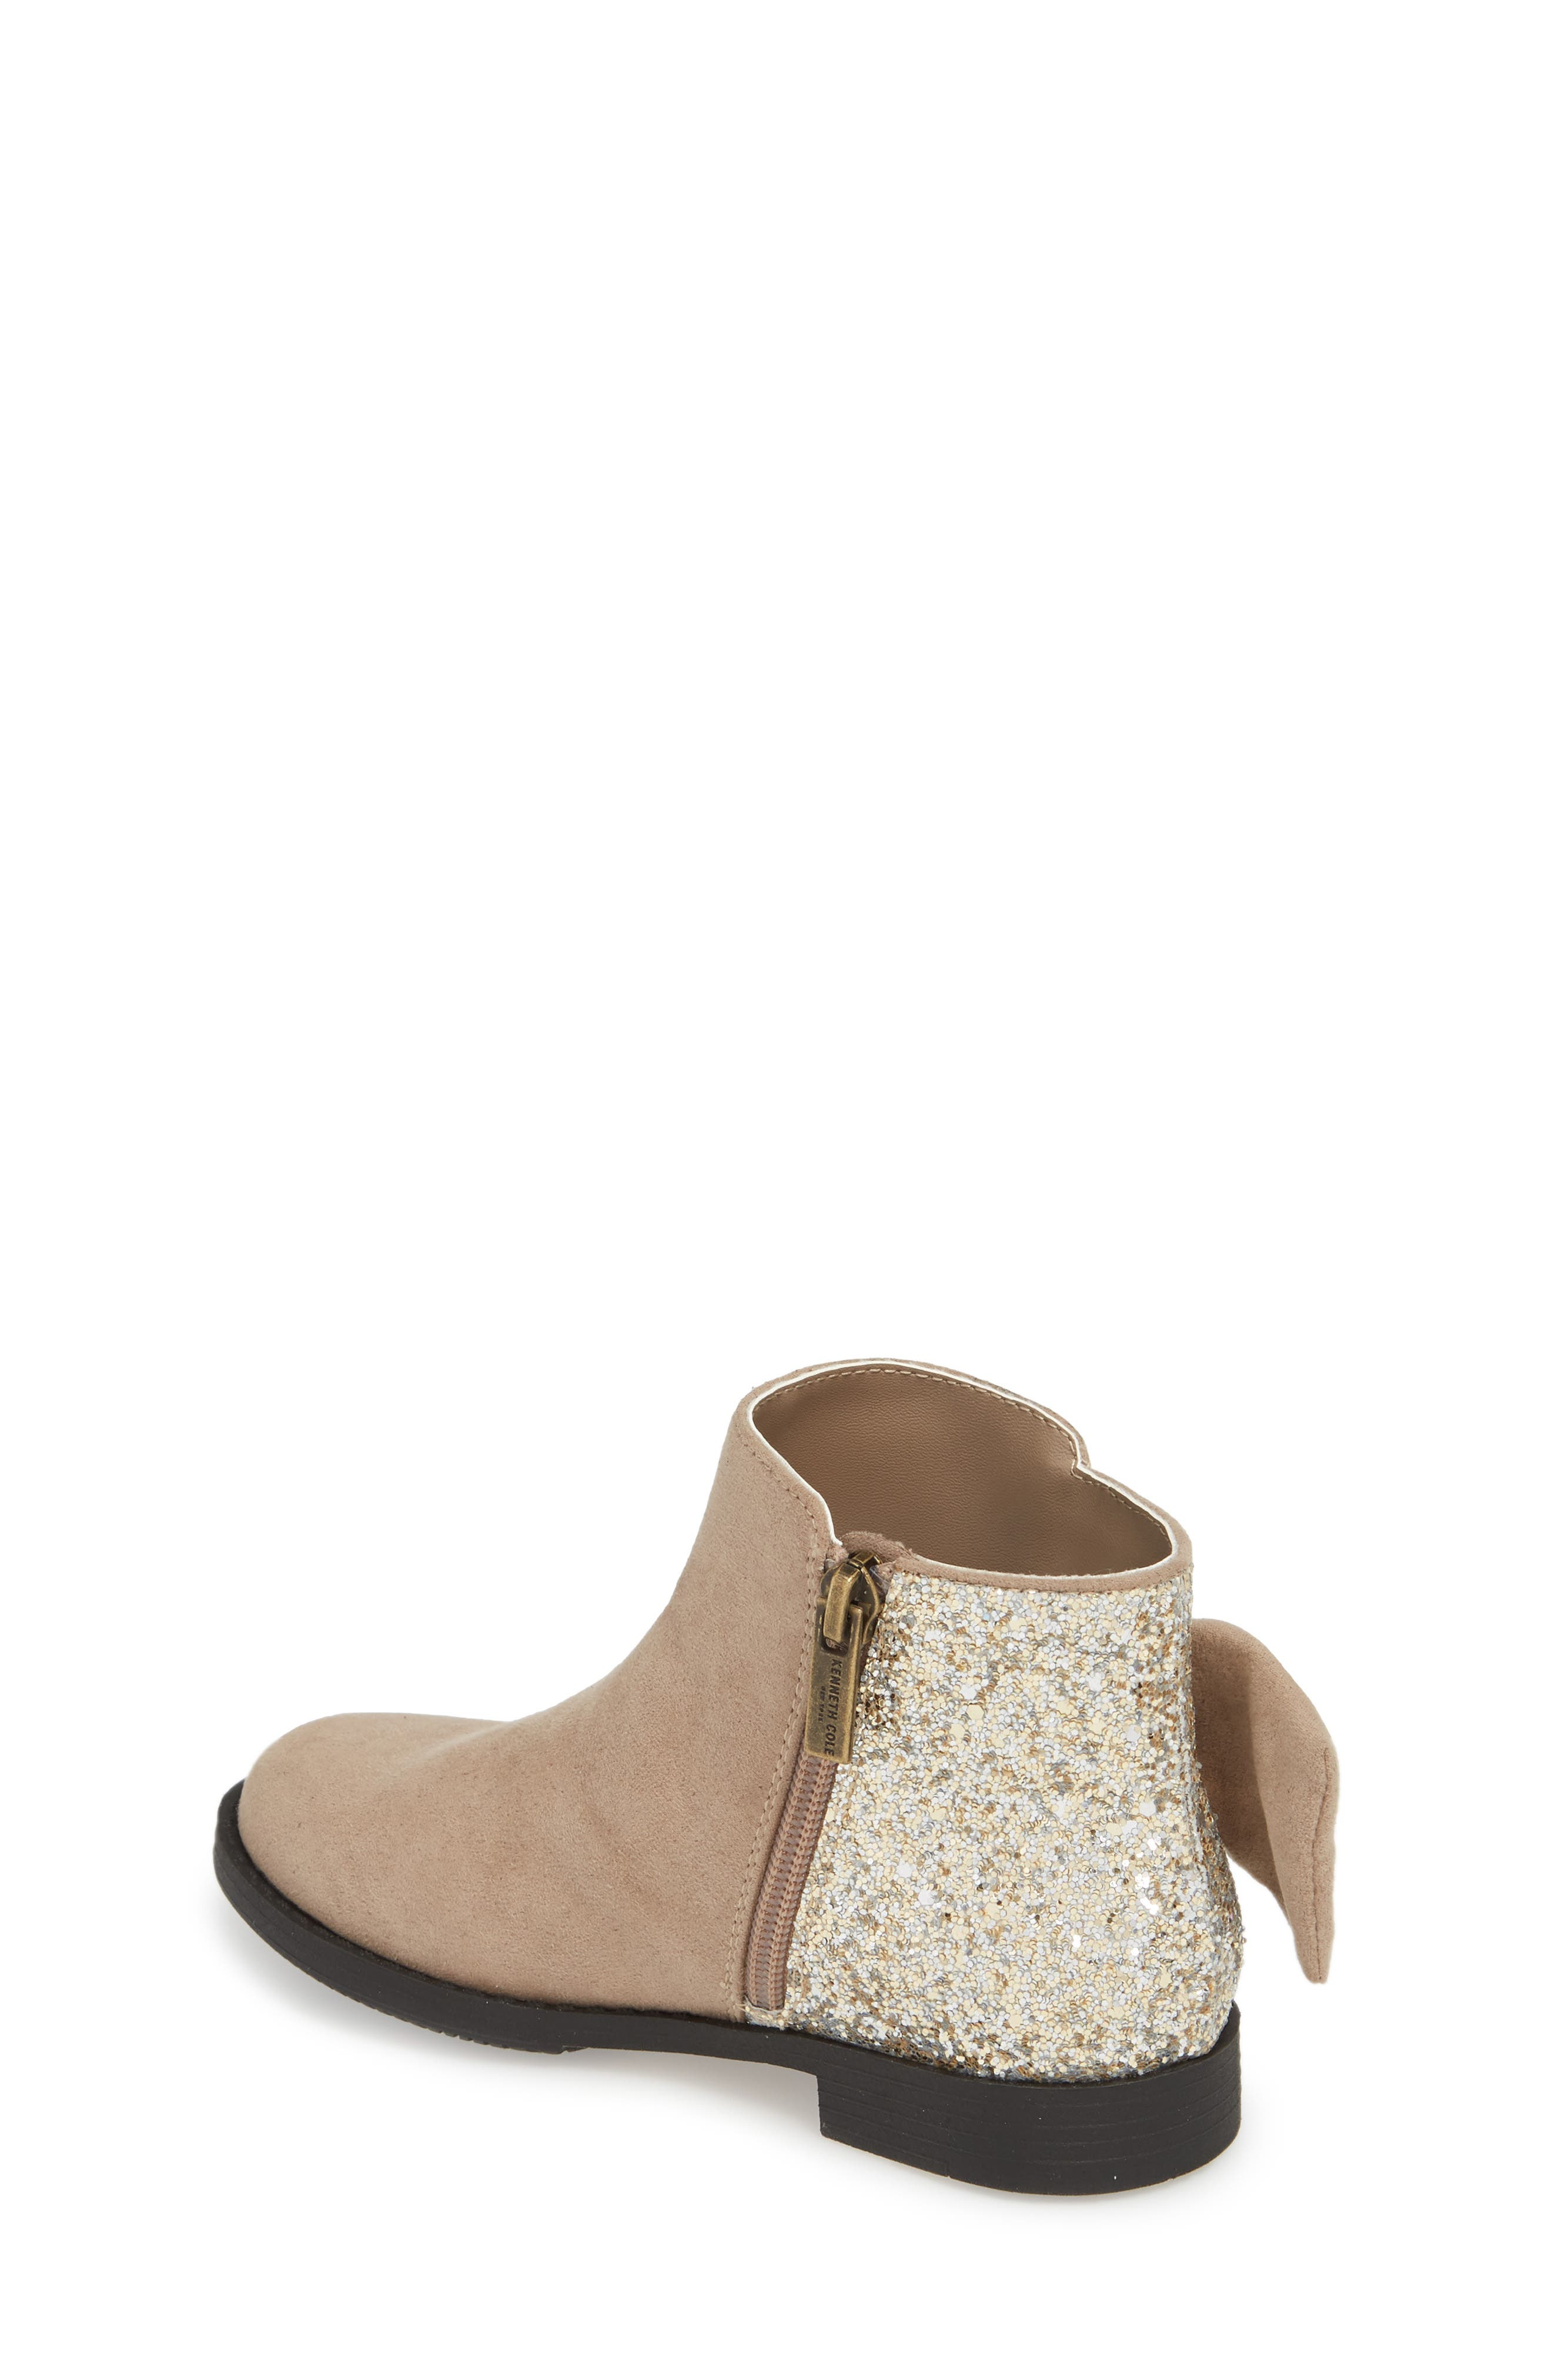 Glittery Kennedy Tie Bootie,                             Alternate thumbnail 2, color,                             TAUPE